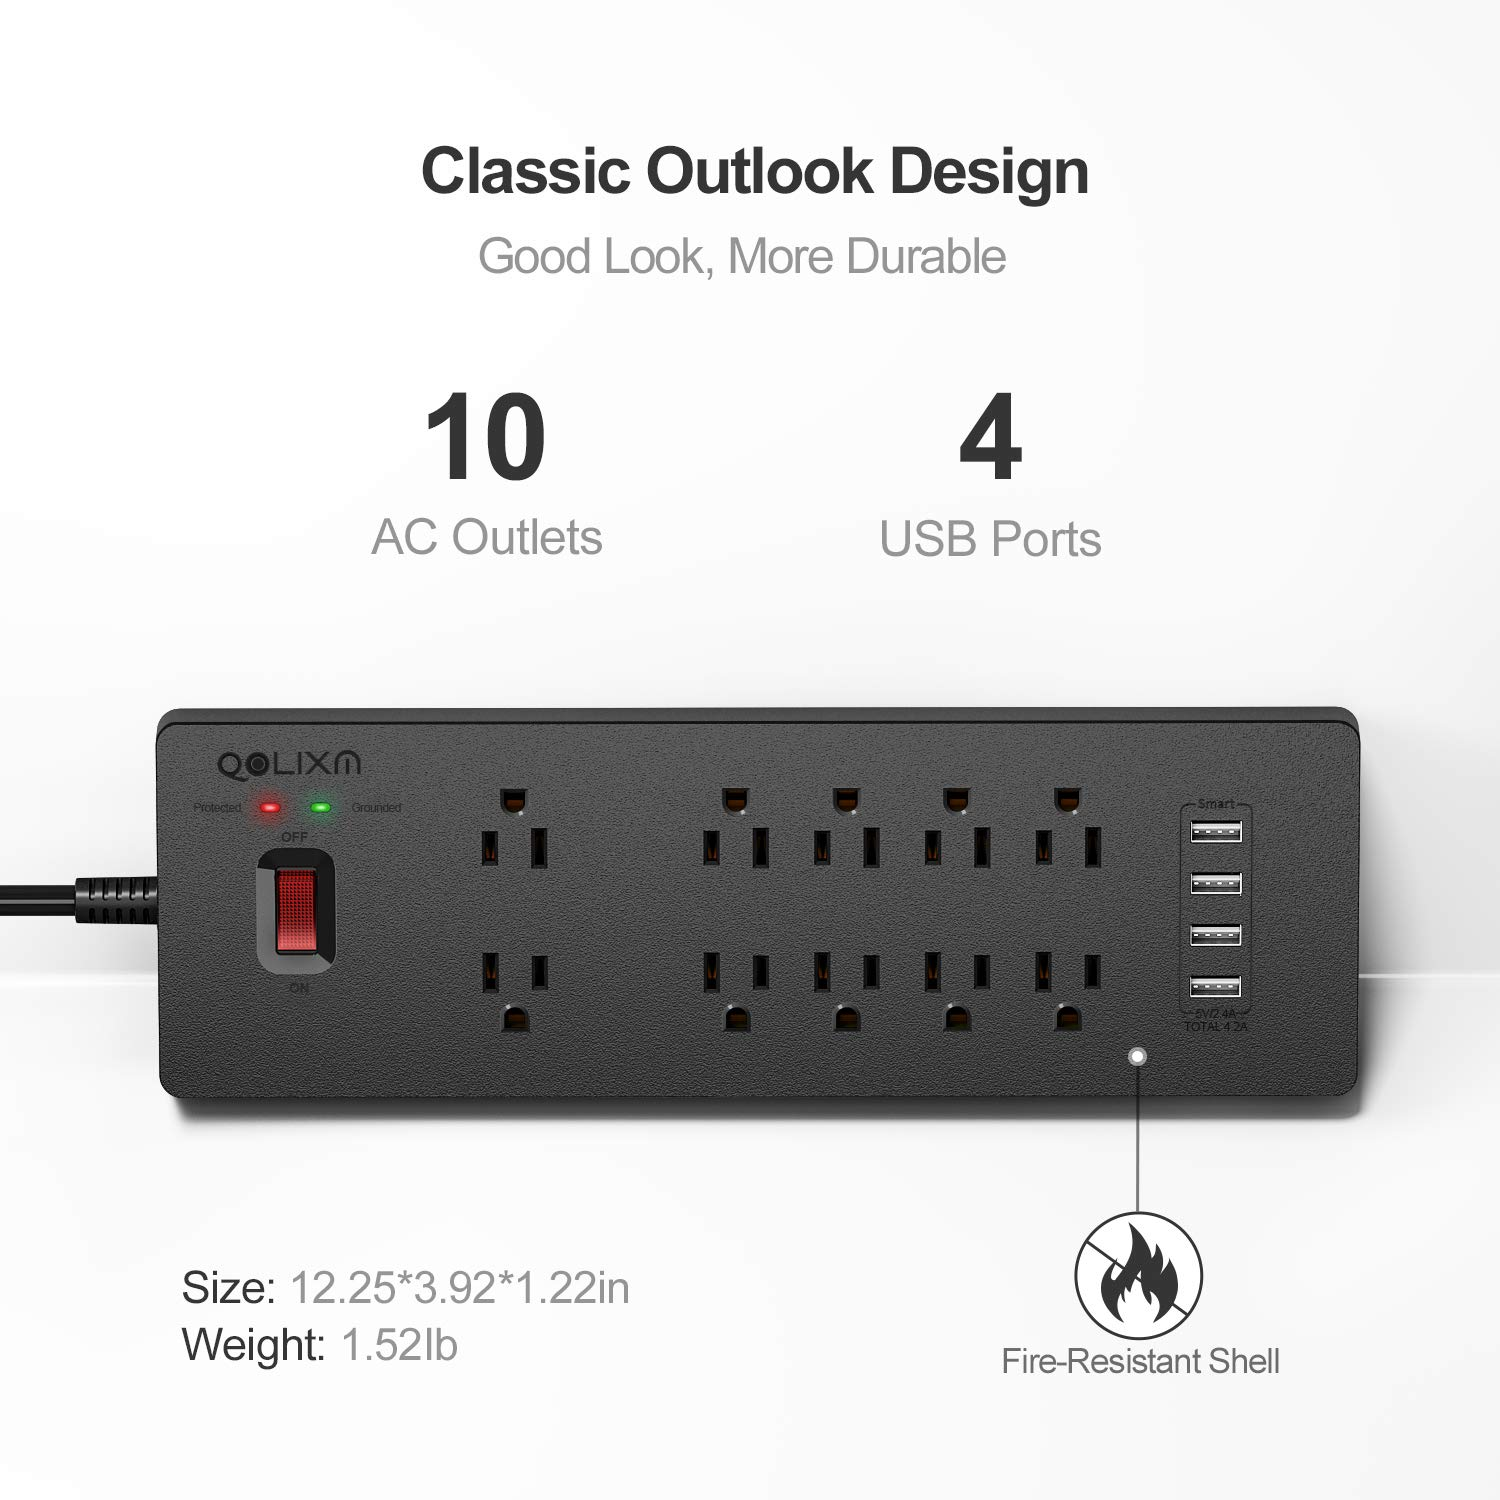 Mountable 10 AC Outlet Plug Strip with Surge Protector 1875W//15A Long Extension Cord USB Charging Station for Multiple Devices QOLIXM Power Strip with USB Ports